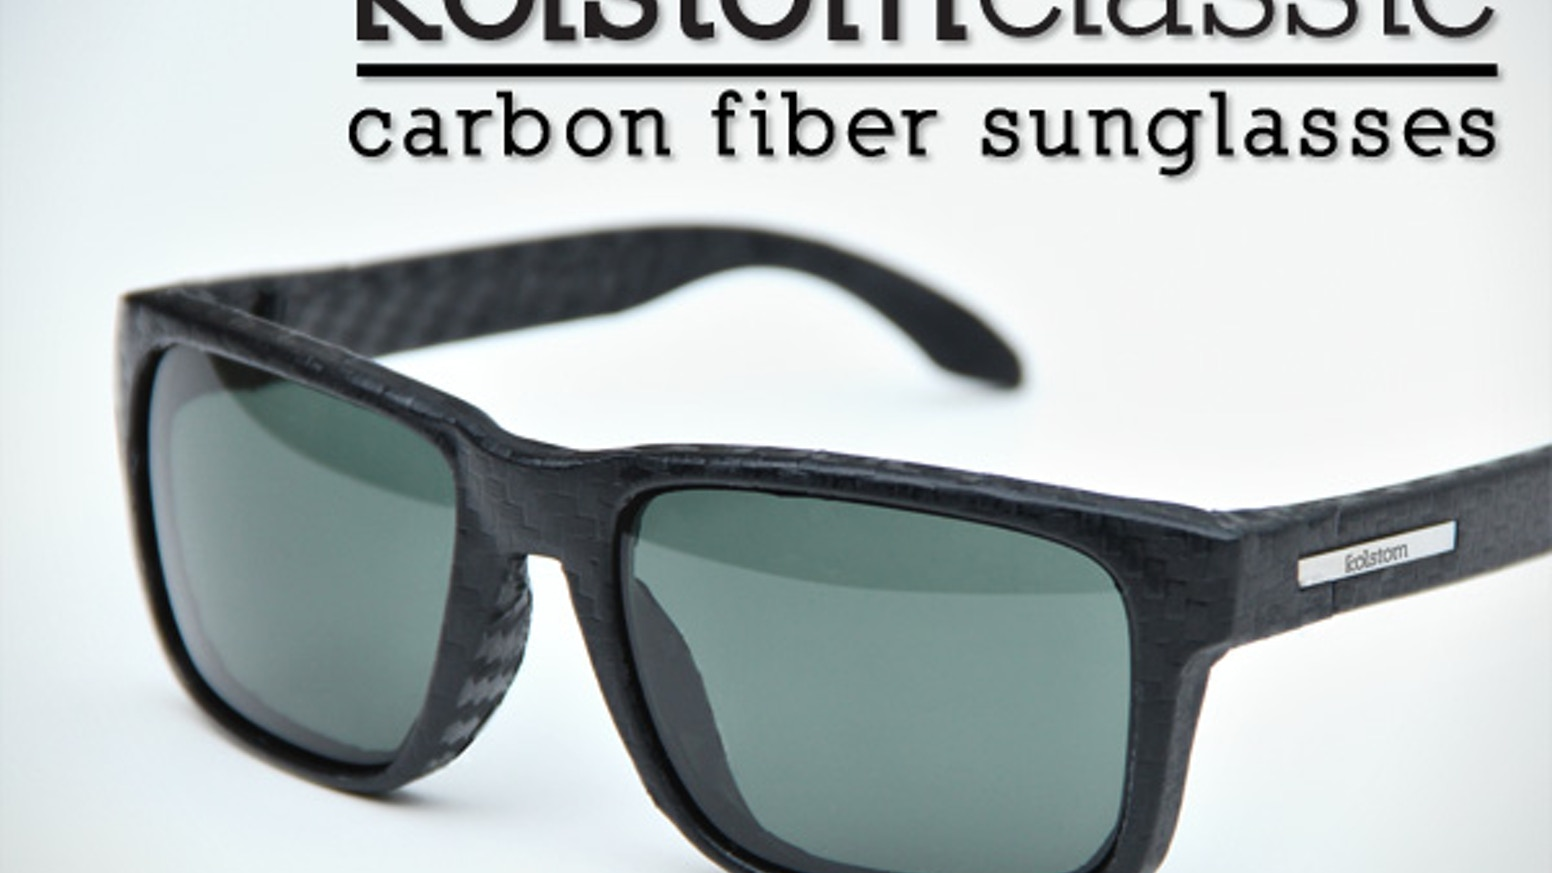 5f8f8c67b7 The world s first compression molded carbon fiber sunglasses featuring  polarized optics